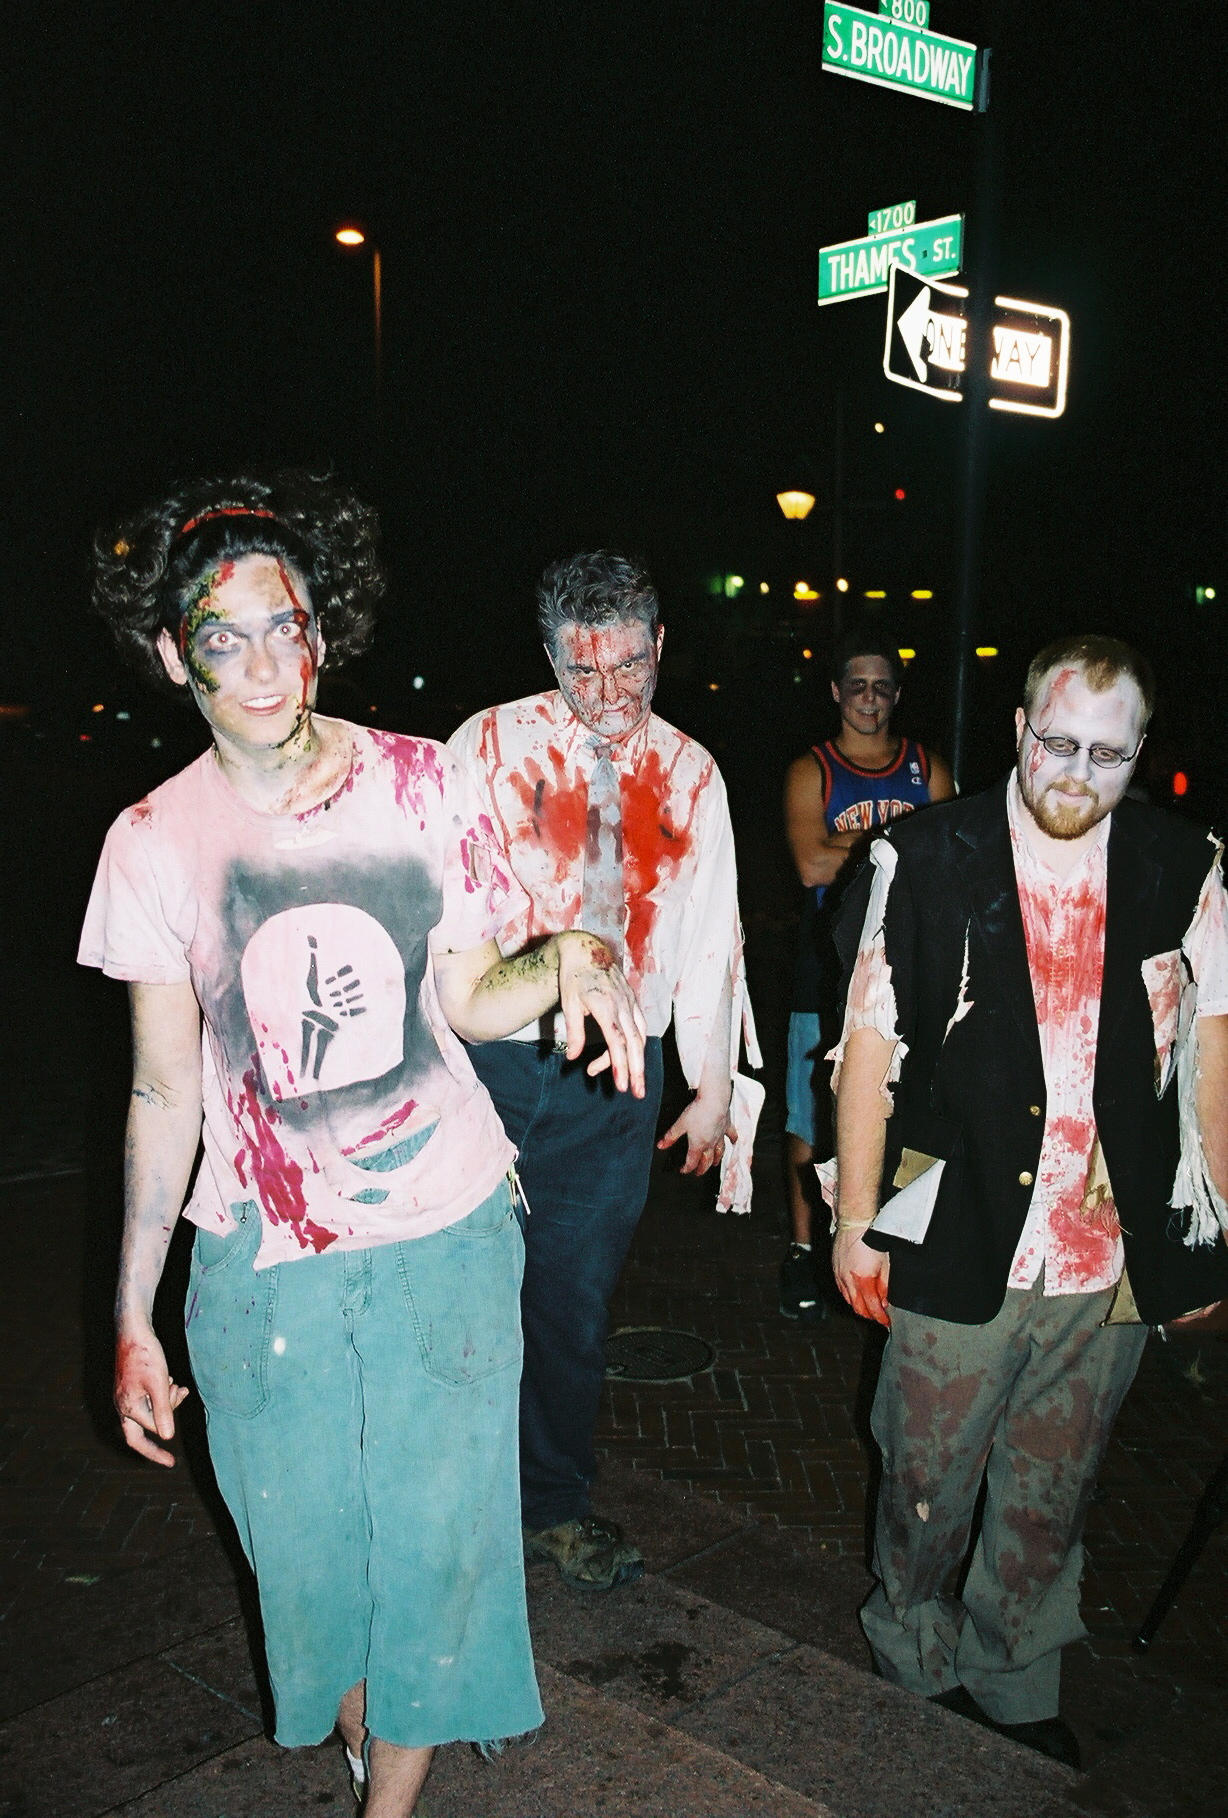 Another Zombie Pic by zombiesareforlovers